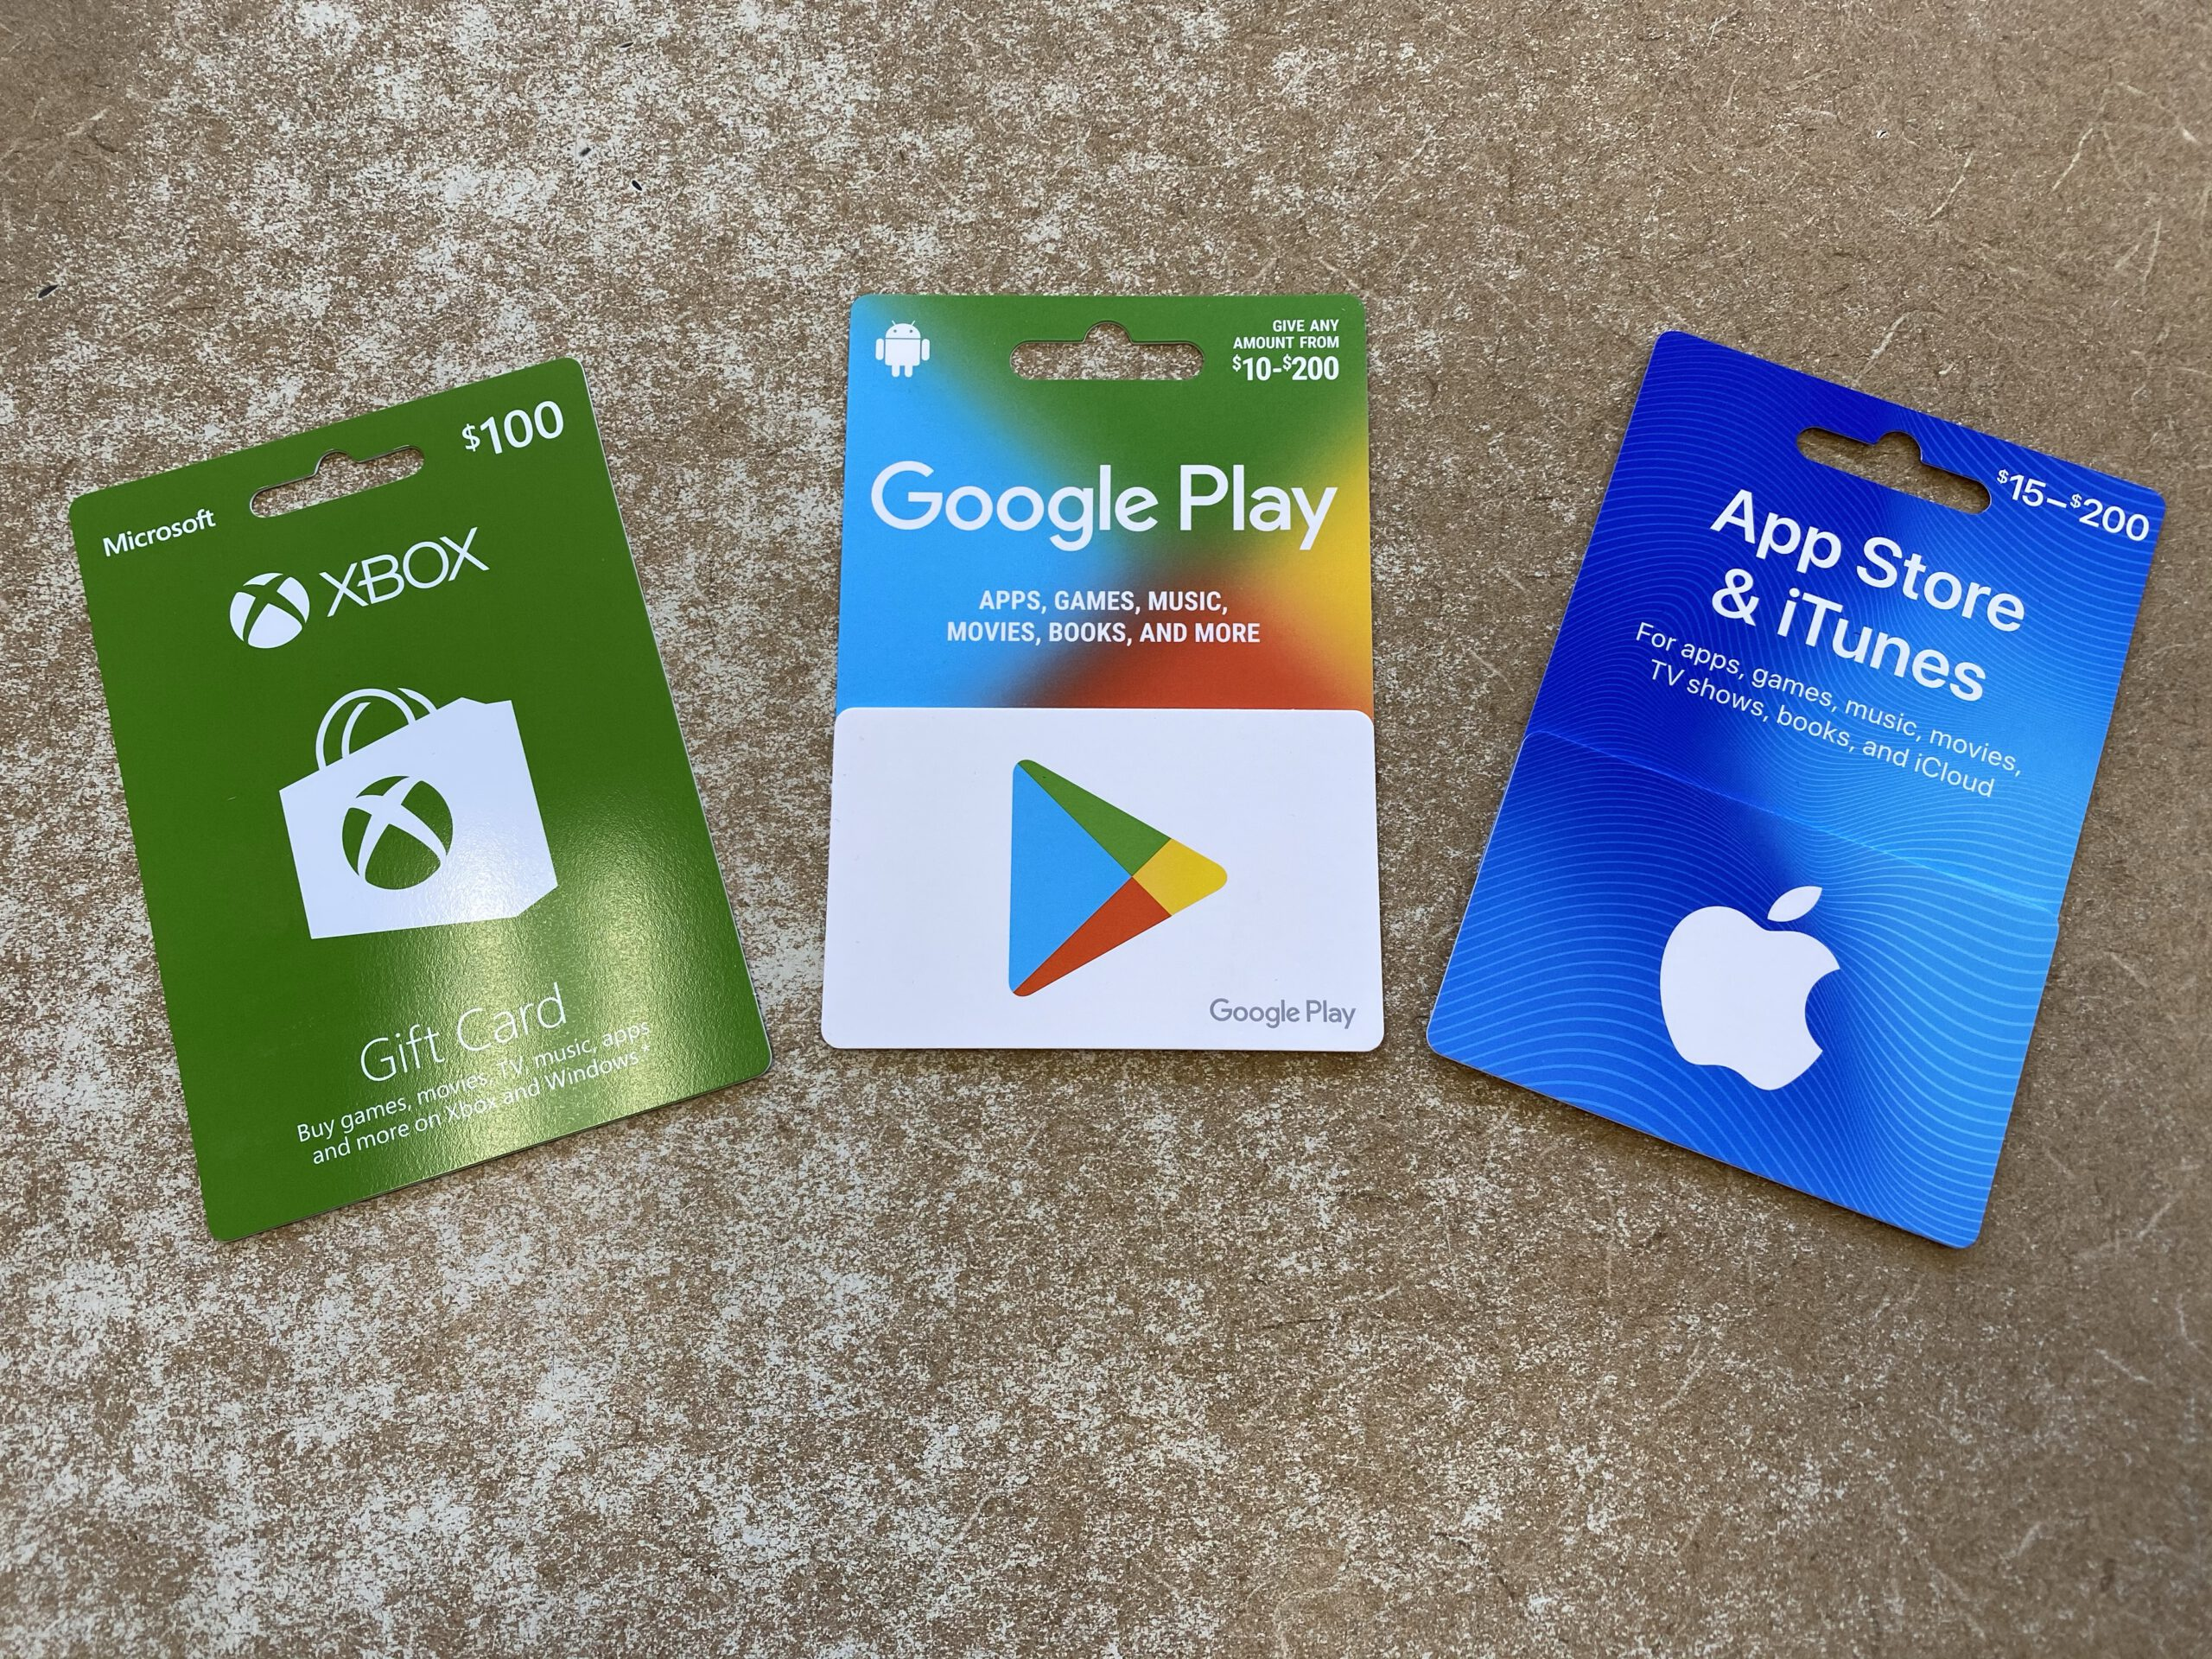 Gift Card Scams Continue to Target Victims